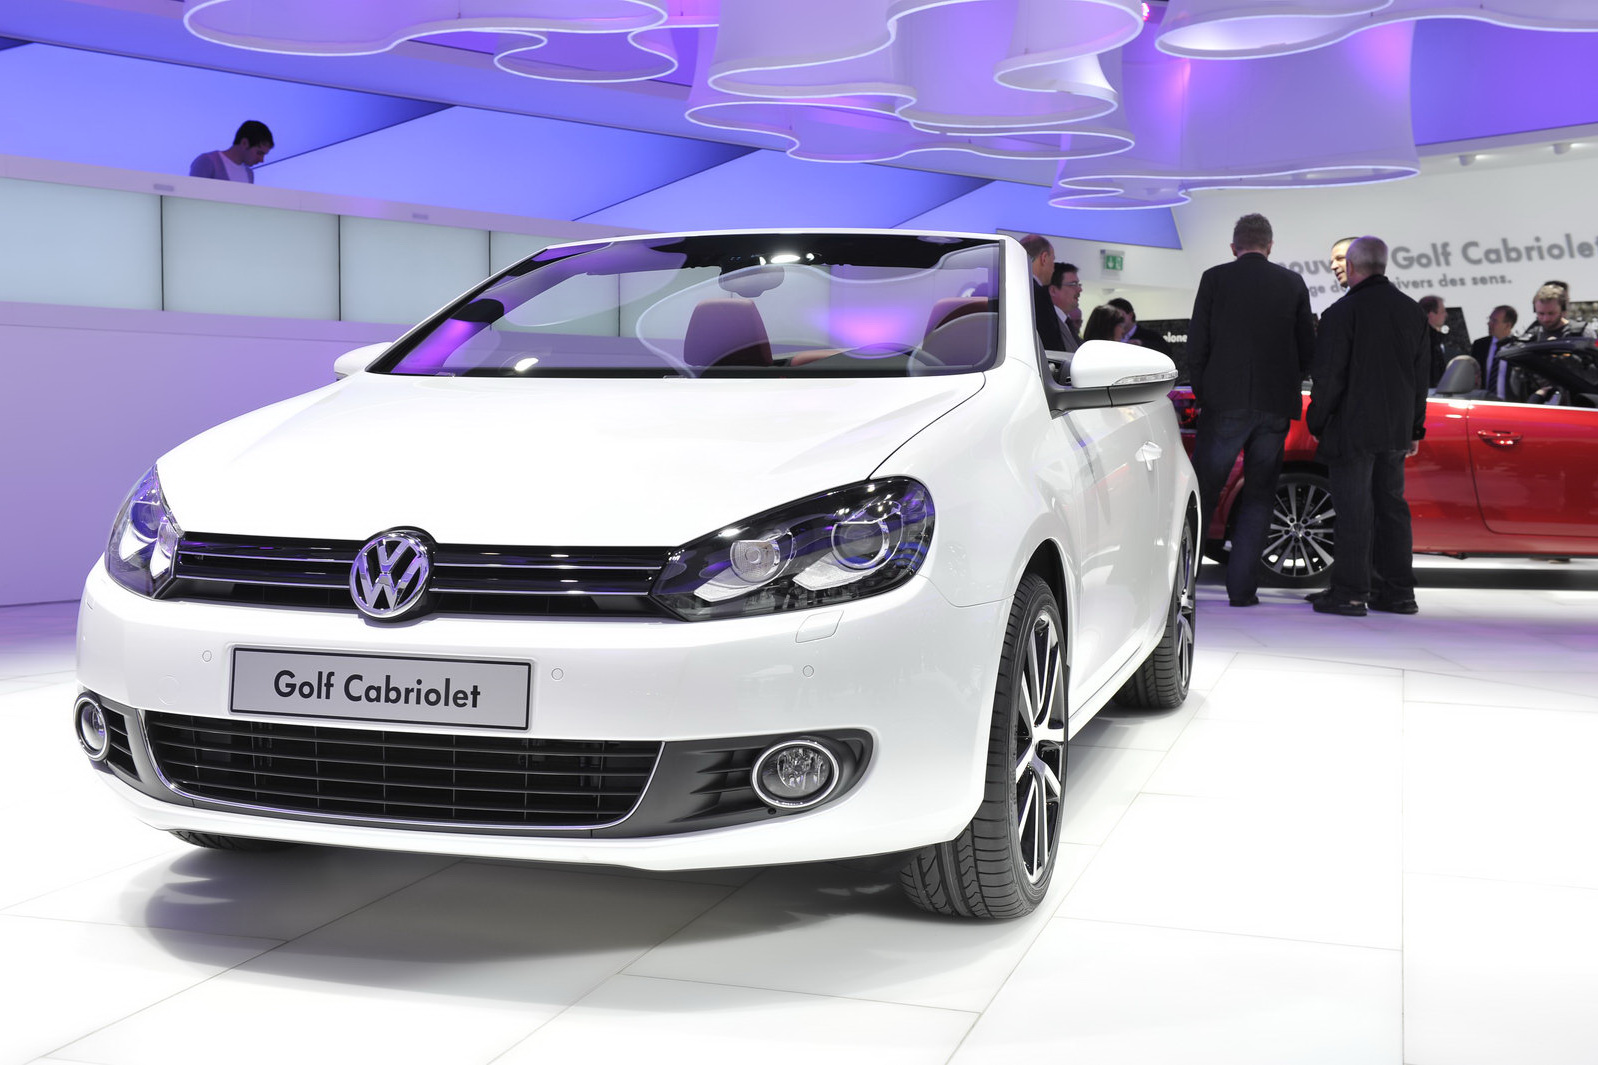 vw golf cabriolet 2013 car information news reviews videos photos advices and more. Black Bedroom Furniture Sets. Home Design Ideas